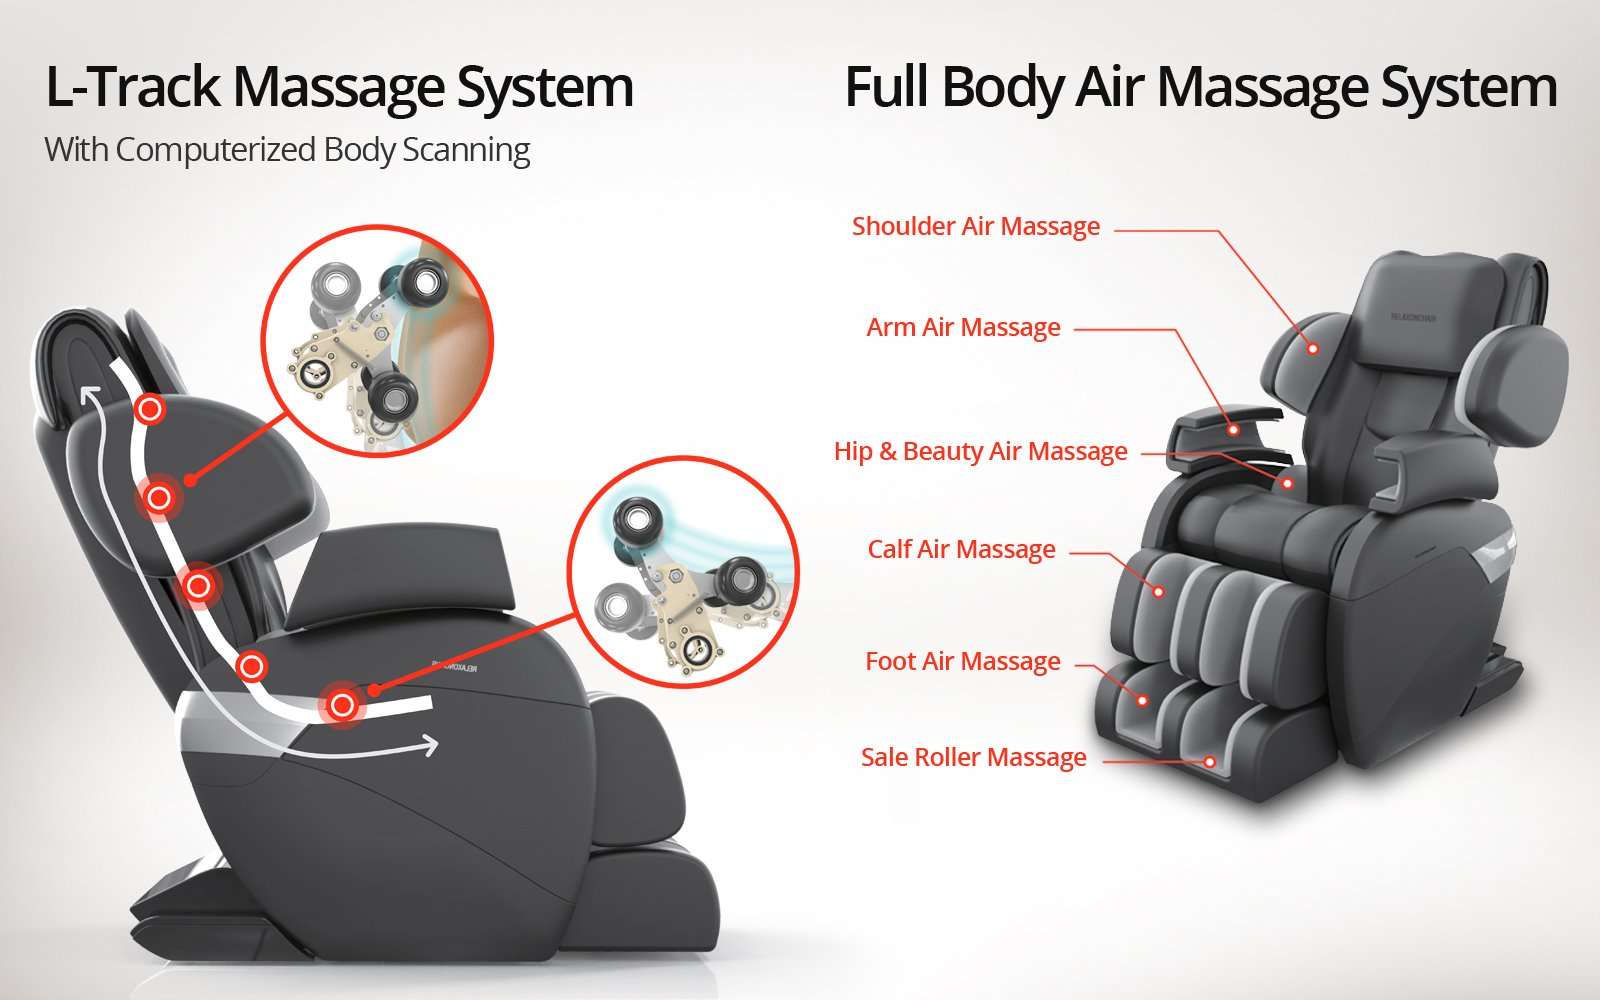 Relaxonchair L-Track Massage System, Relaxonchair Full Body Air Massage System